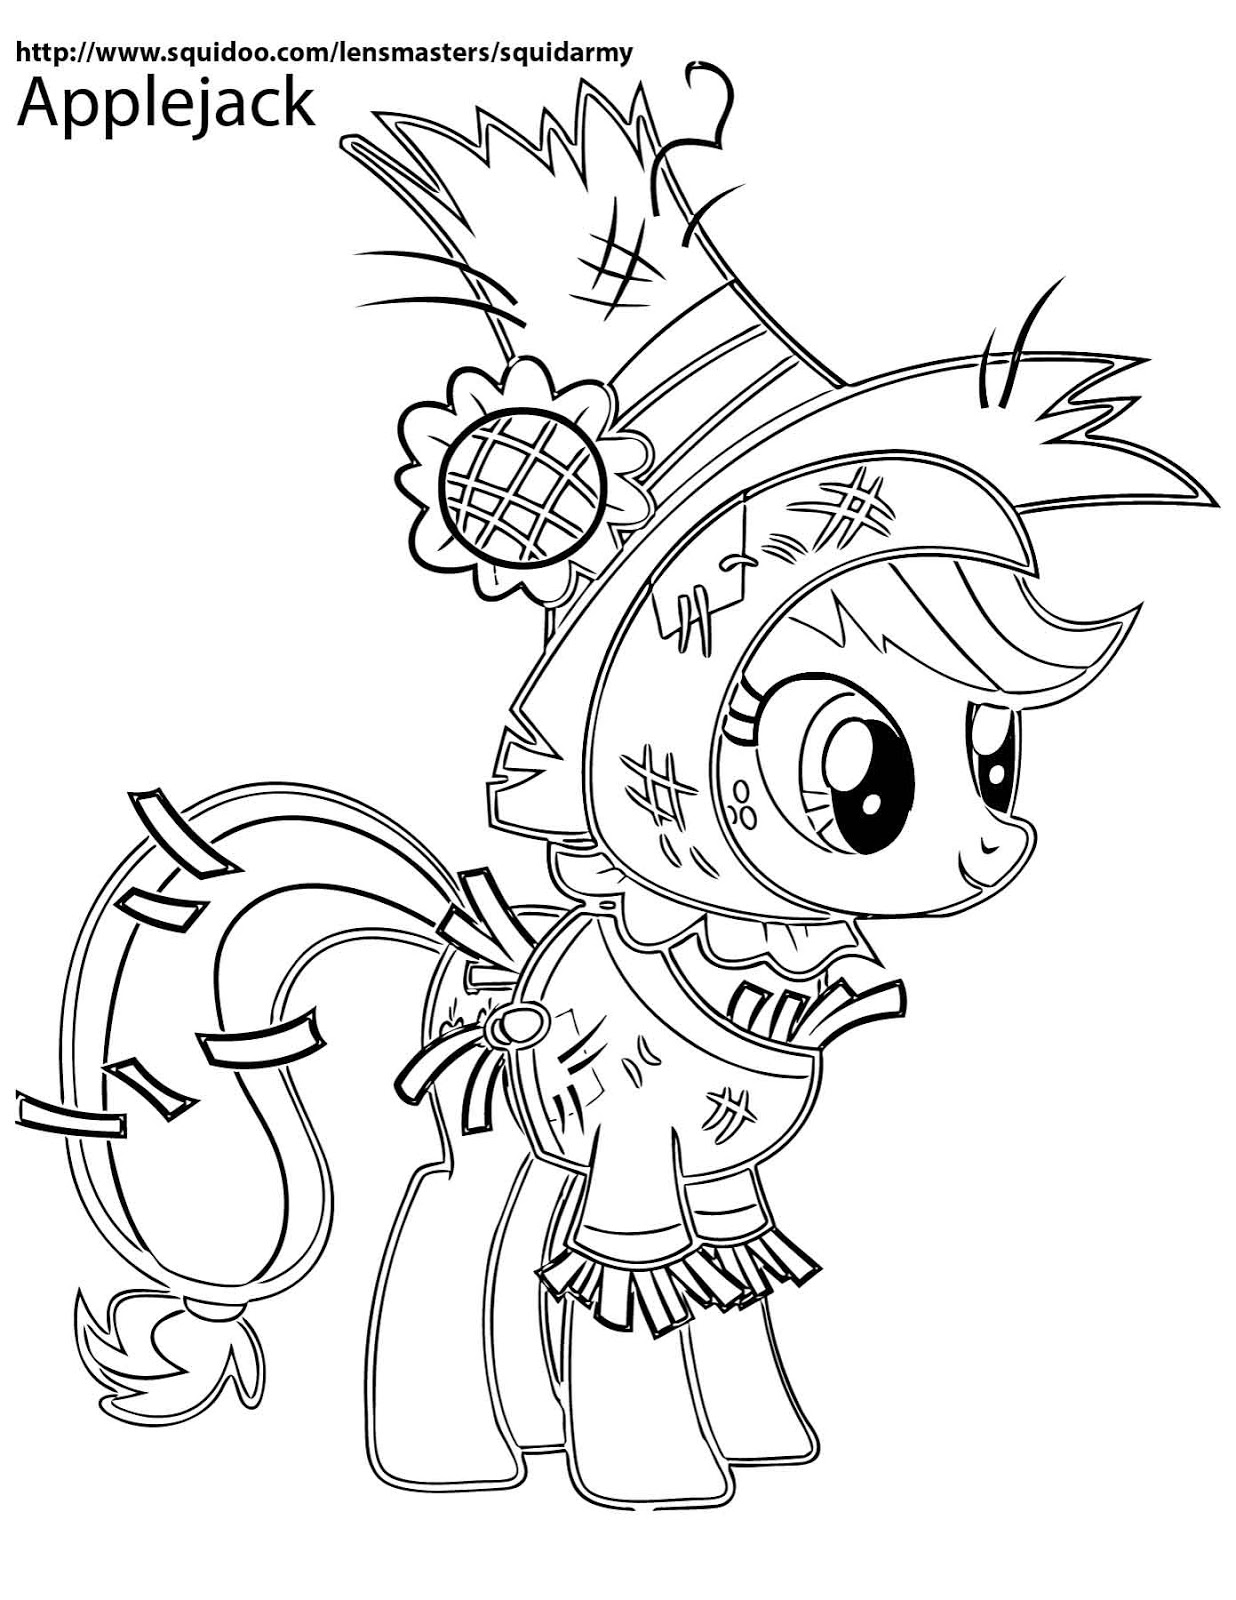 applejack coloring pages - my little pony coloring pages squid army